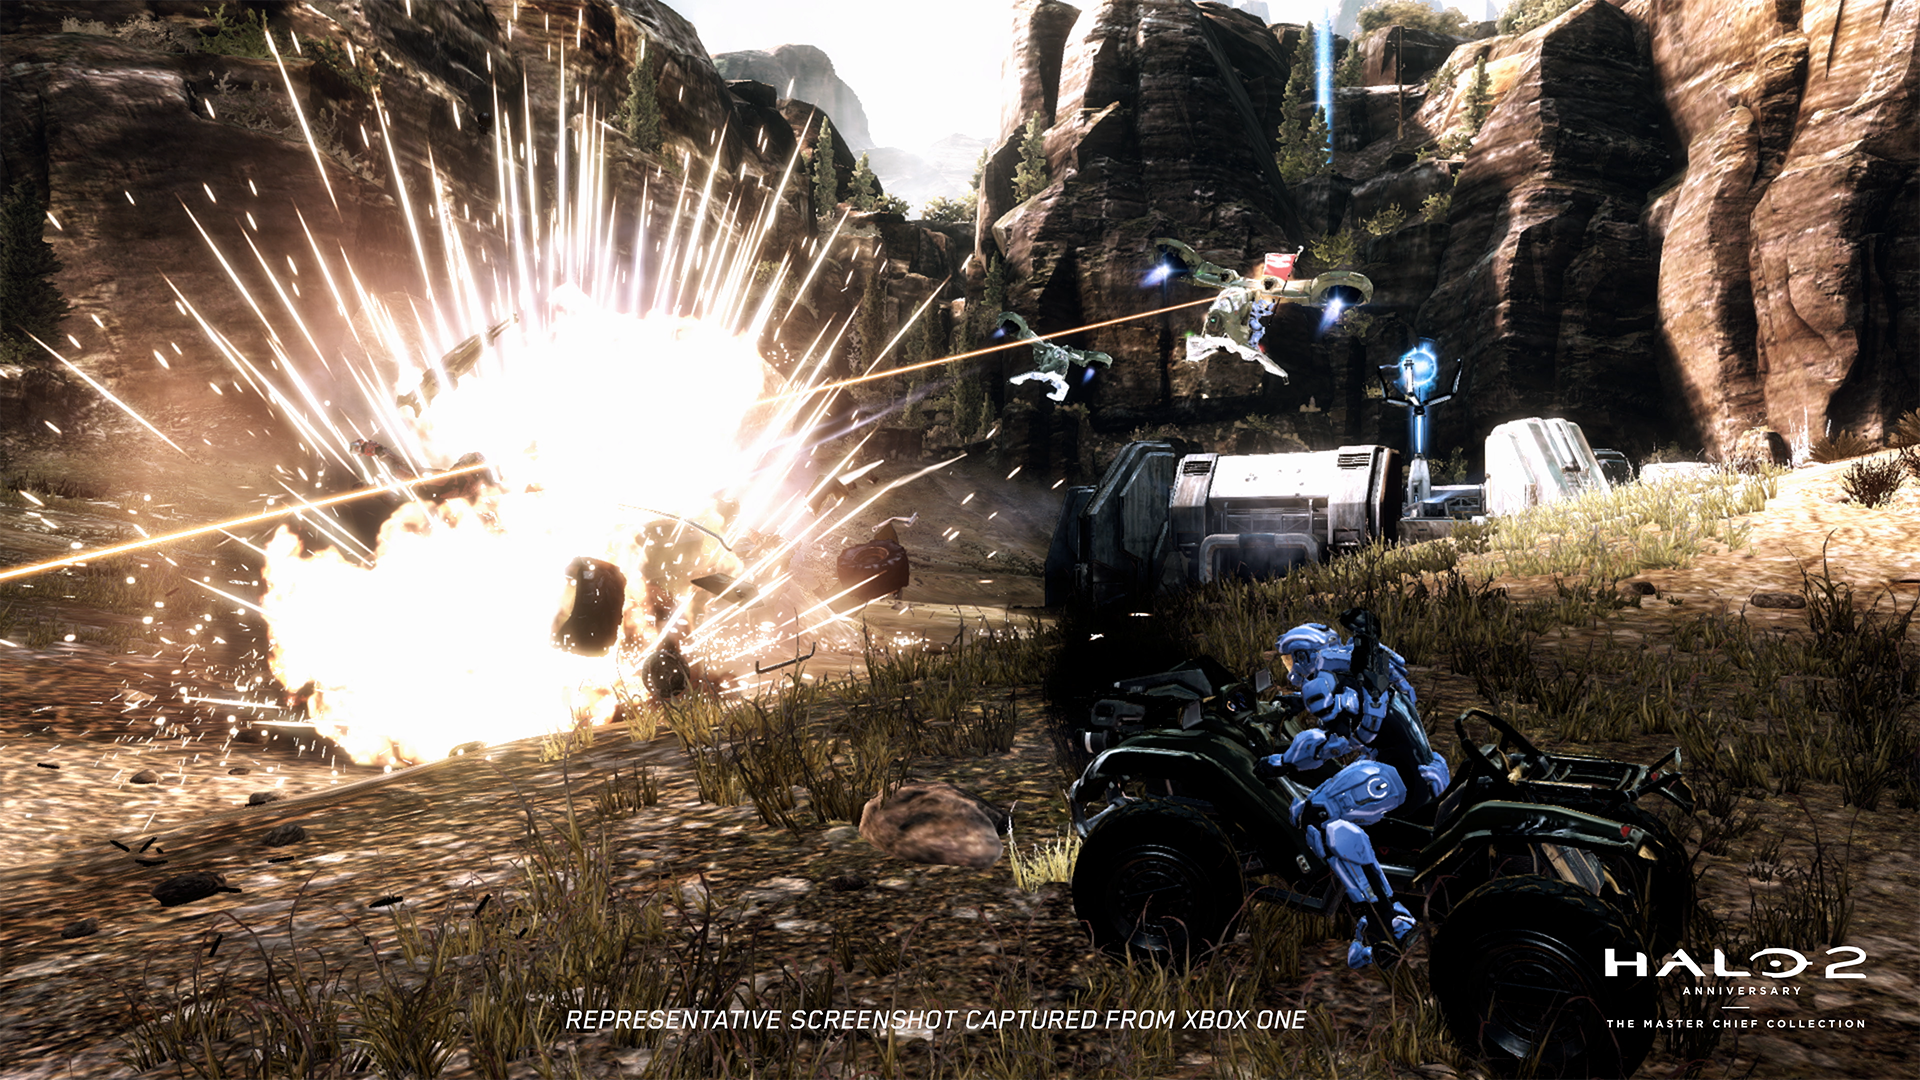 Halo-Master-Chief-Collection-2020_Halo2Anniversary_Multiplayer_03_Watermarked_1920x1080